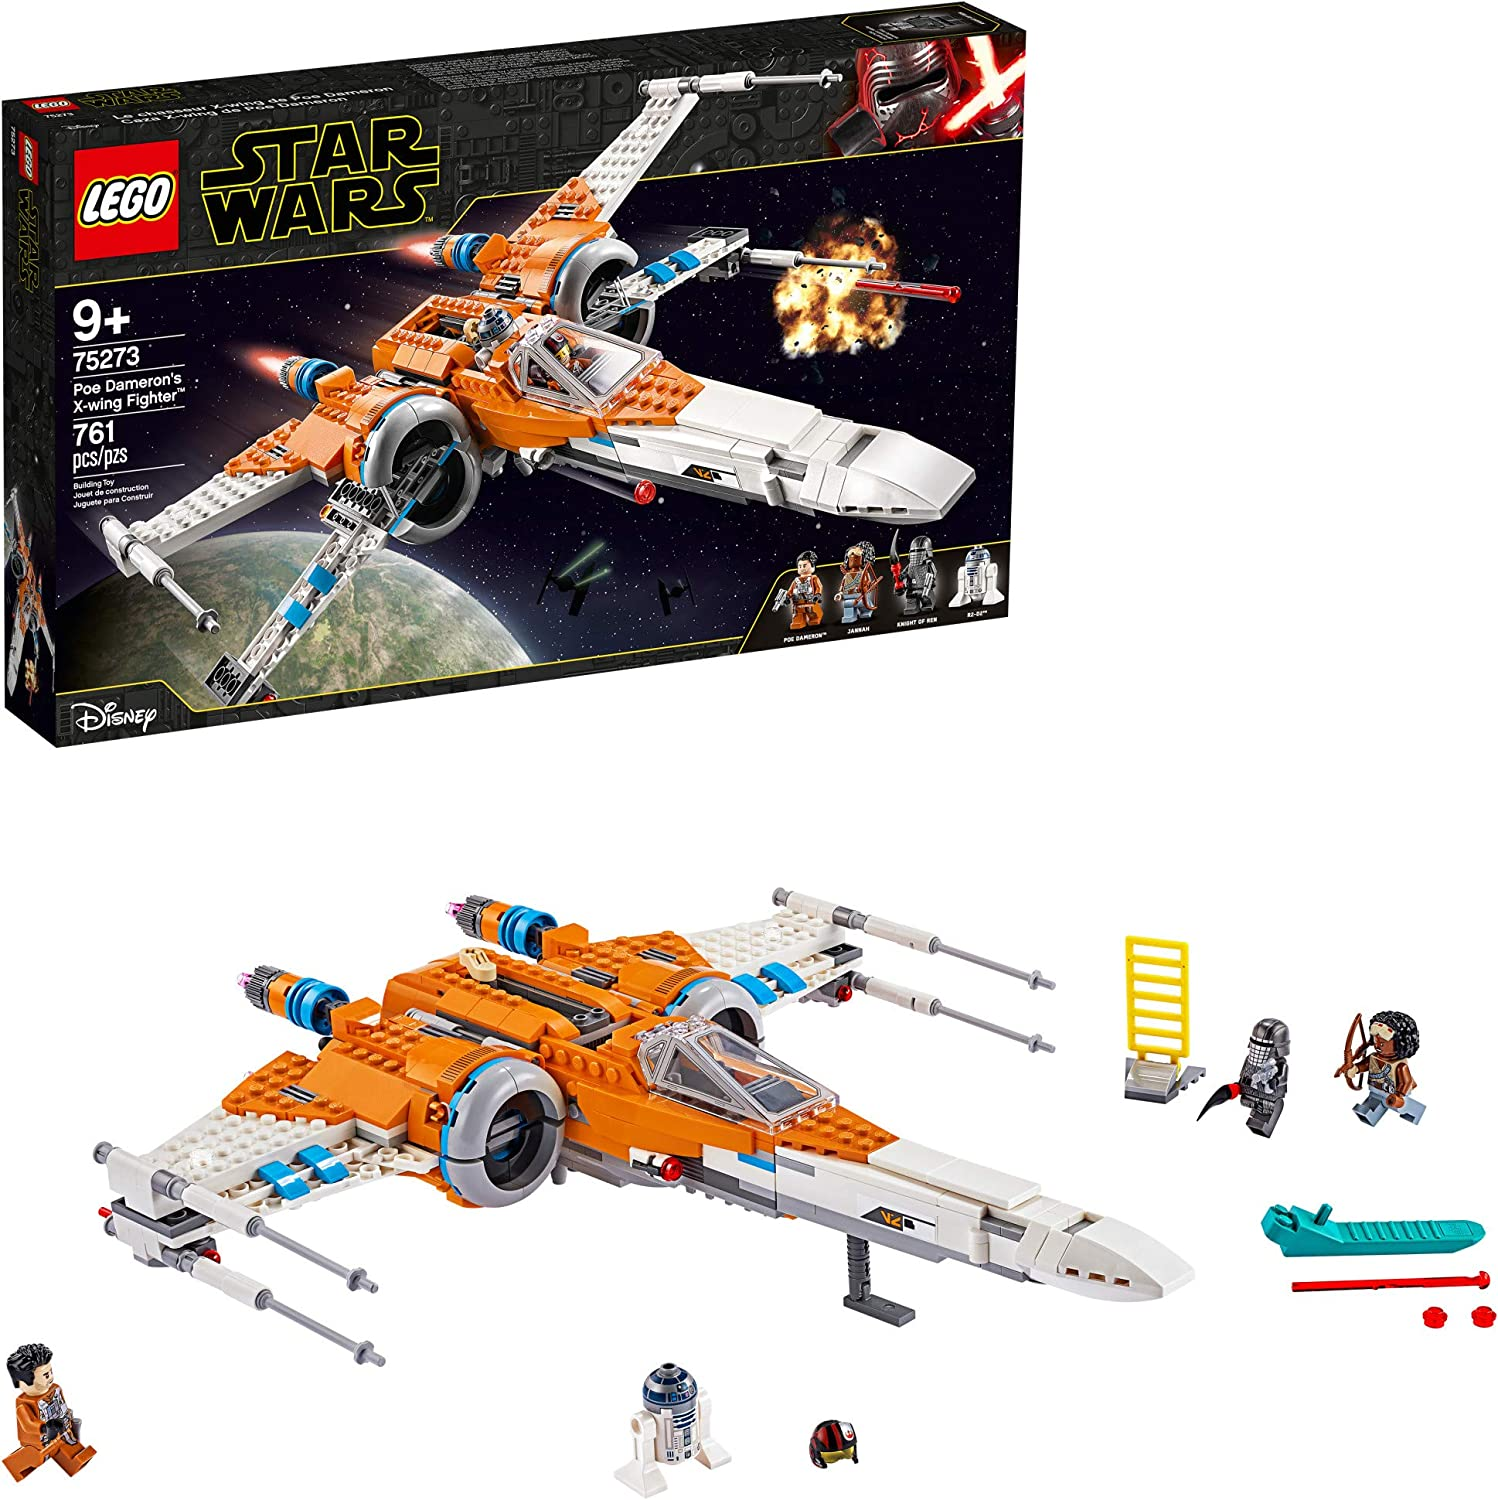 LEGO Star Wars Poe Dameron's X-Wing Fighter 75273 Building Kit, Cool Construction Toy for Kids, New 2020 (761 Pieces)